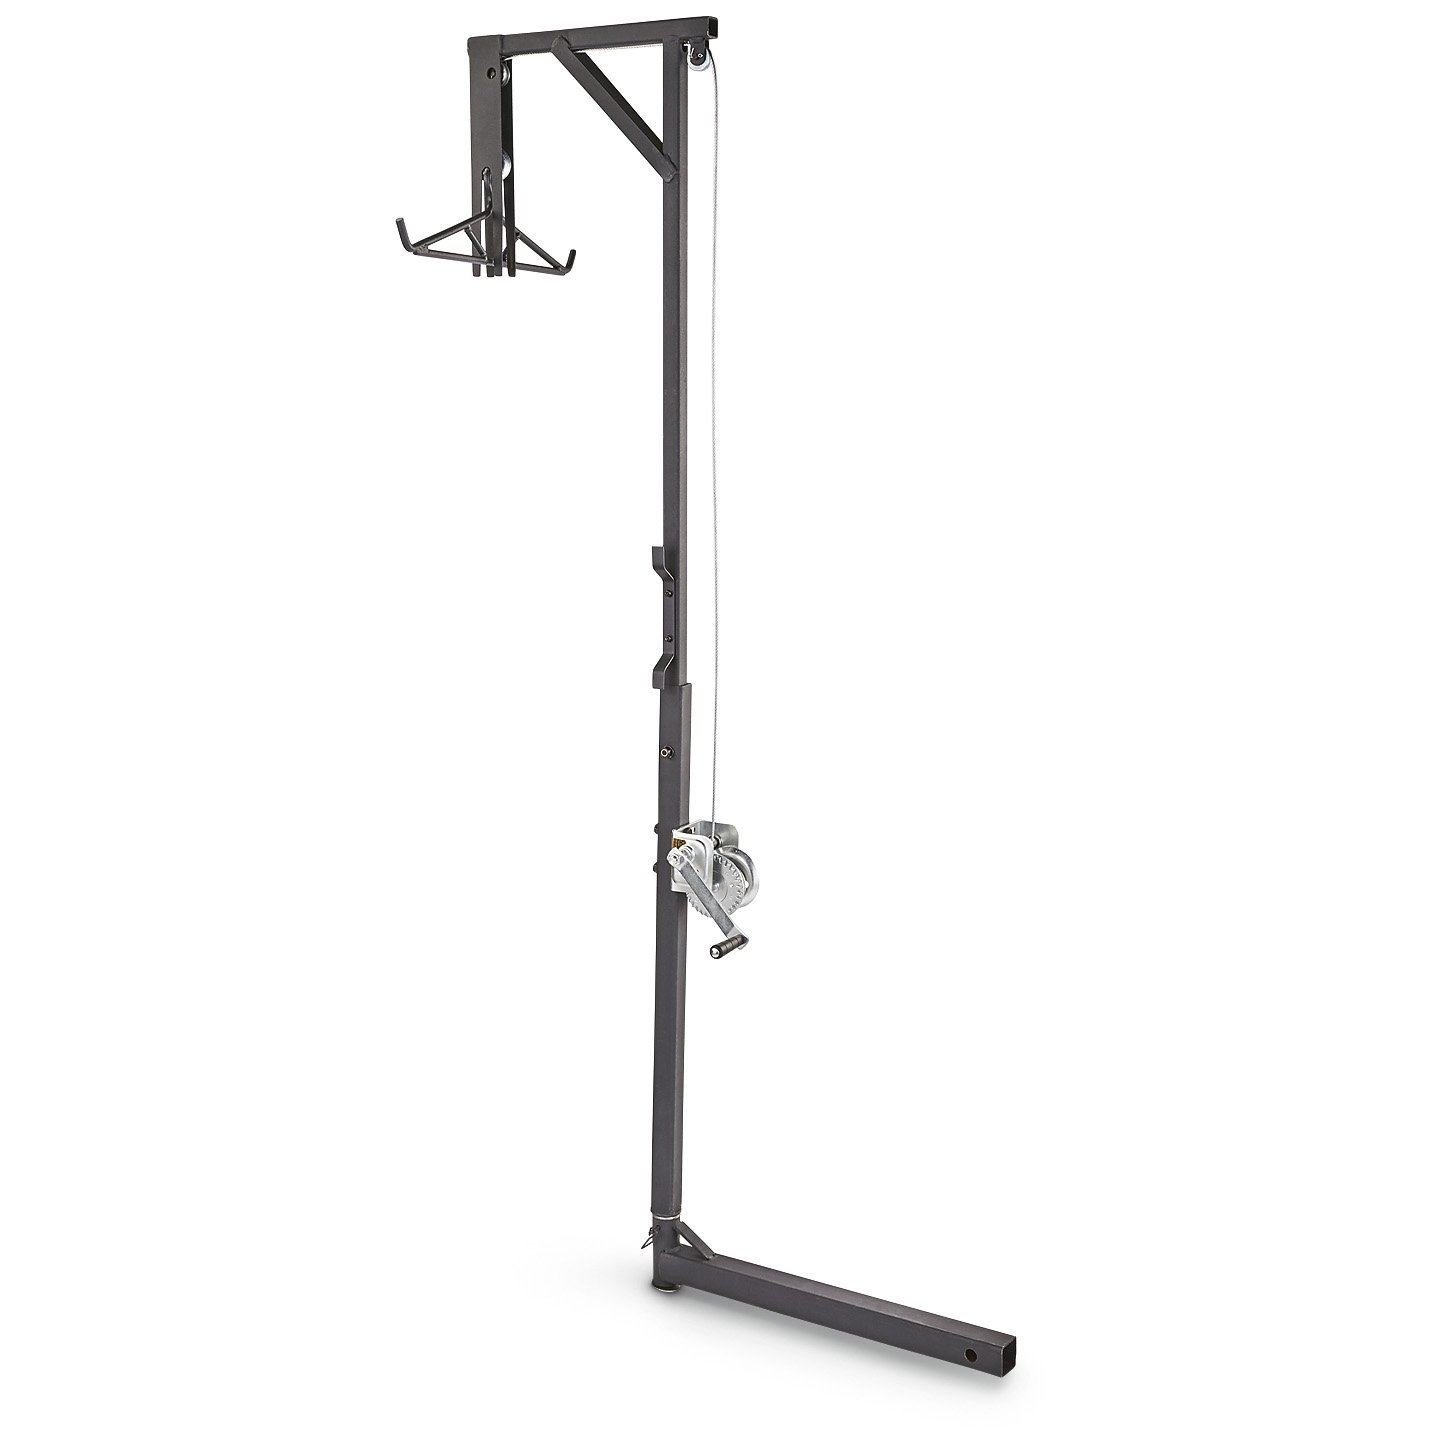 Guide Gear Deluxe Deer Hoist and Gambrel, Swivel Hitch Lift System